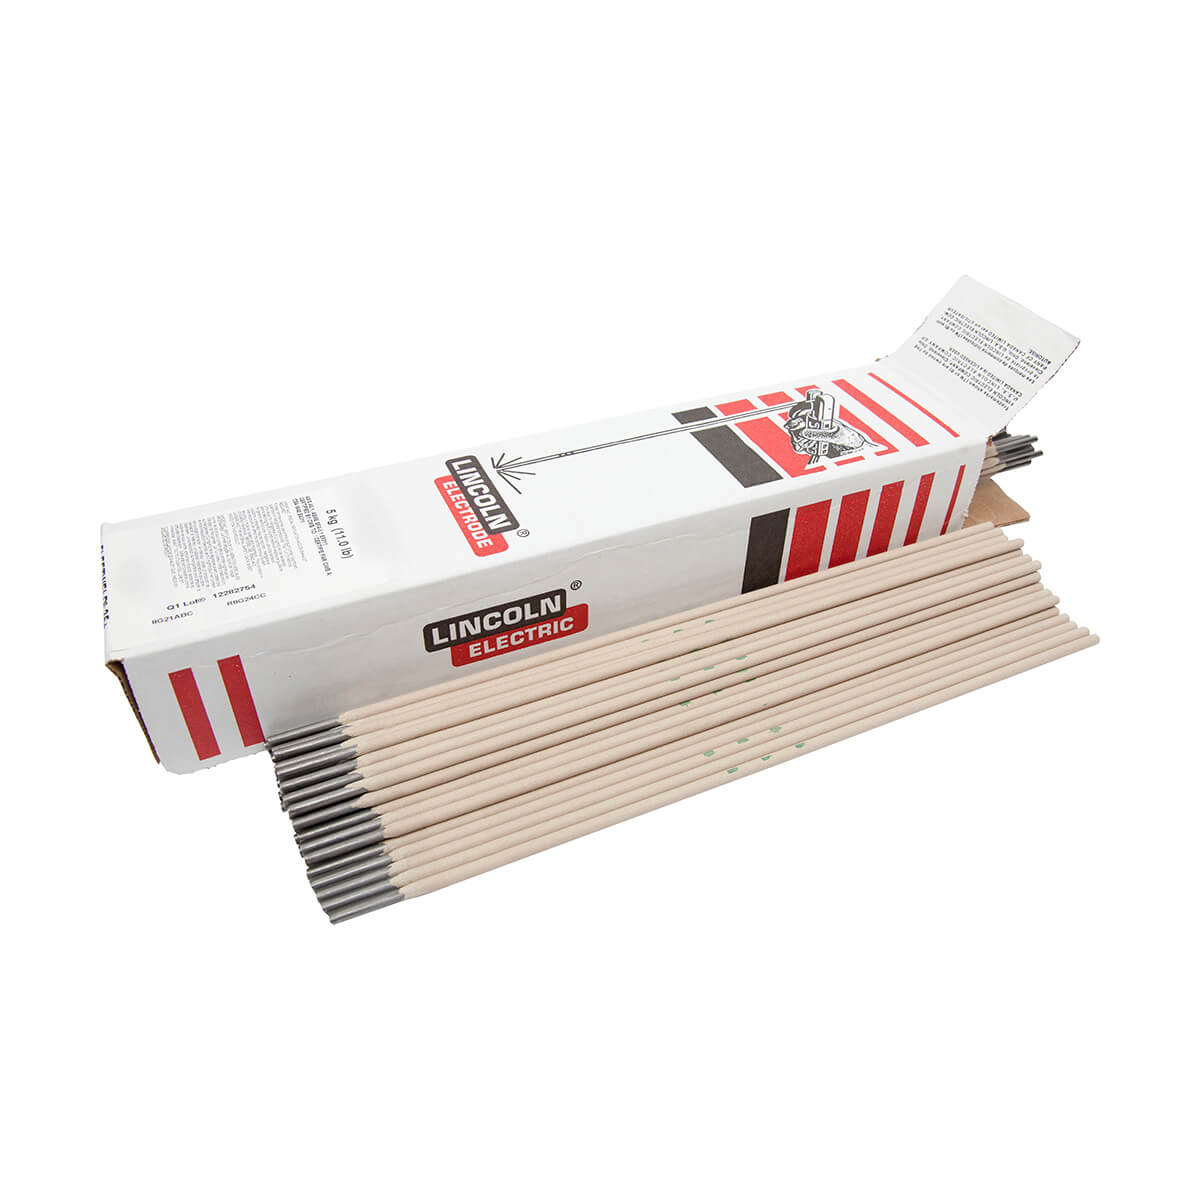 LINCOLN ELECTRIC Fleetweld 5P+ welding electrodes- 5/32-in x 14-in